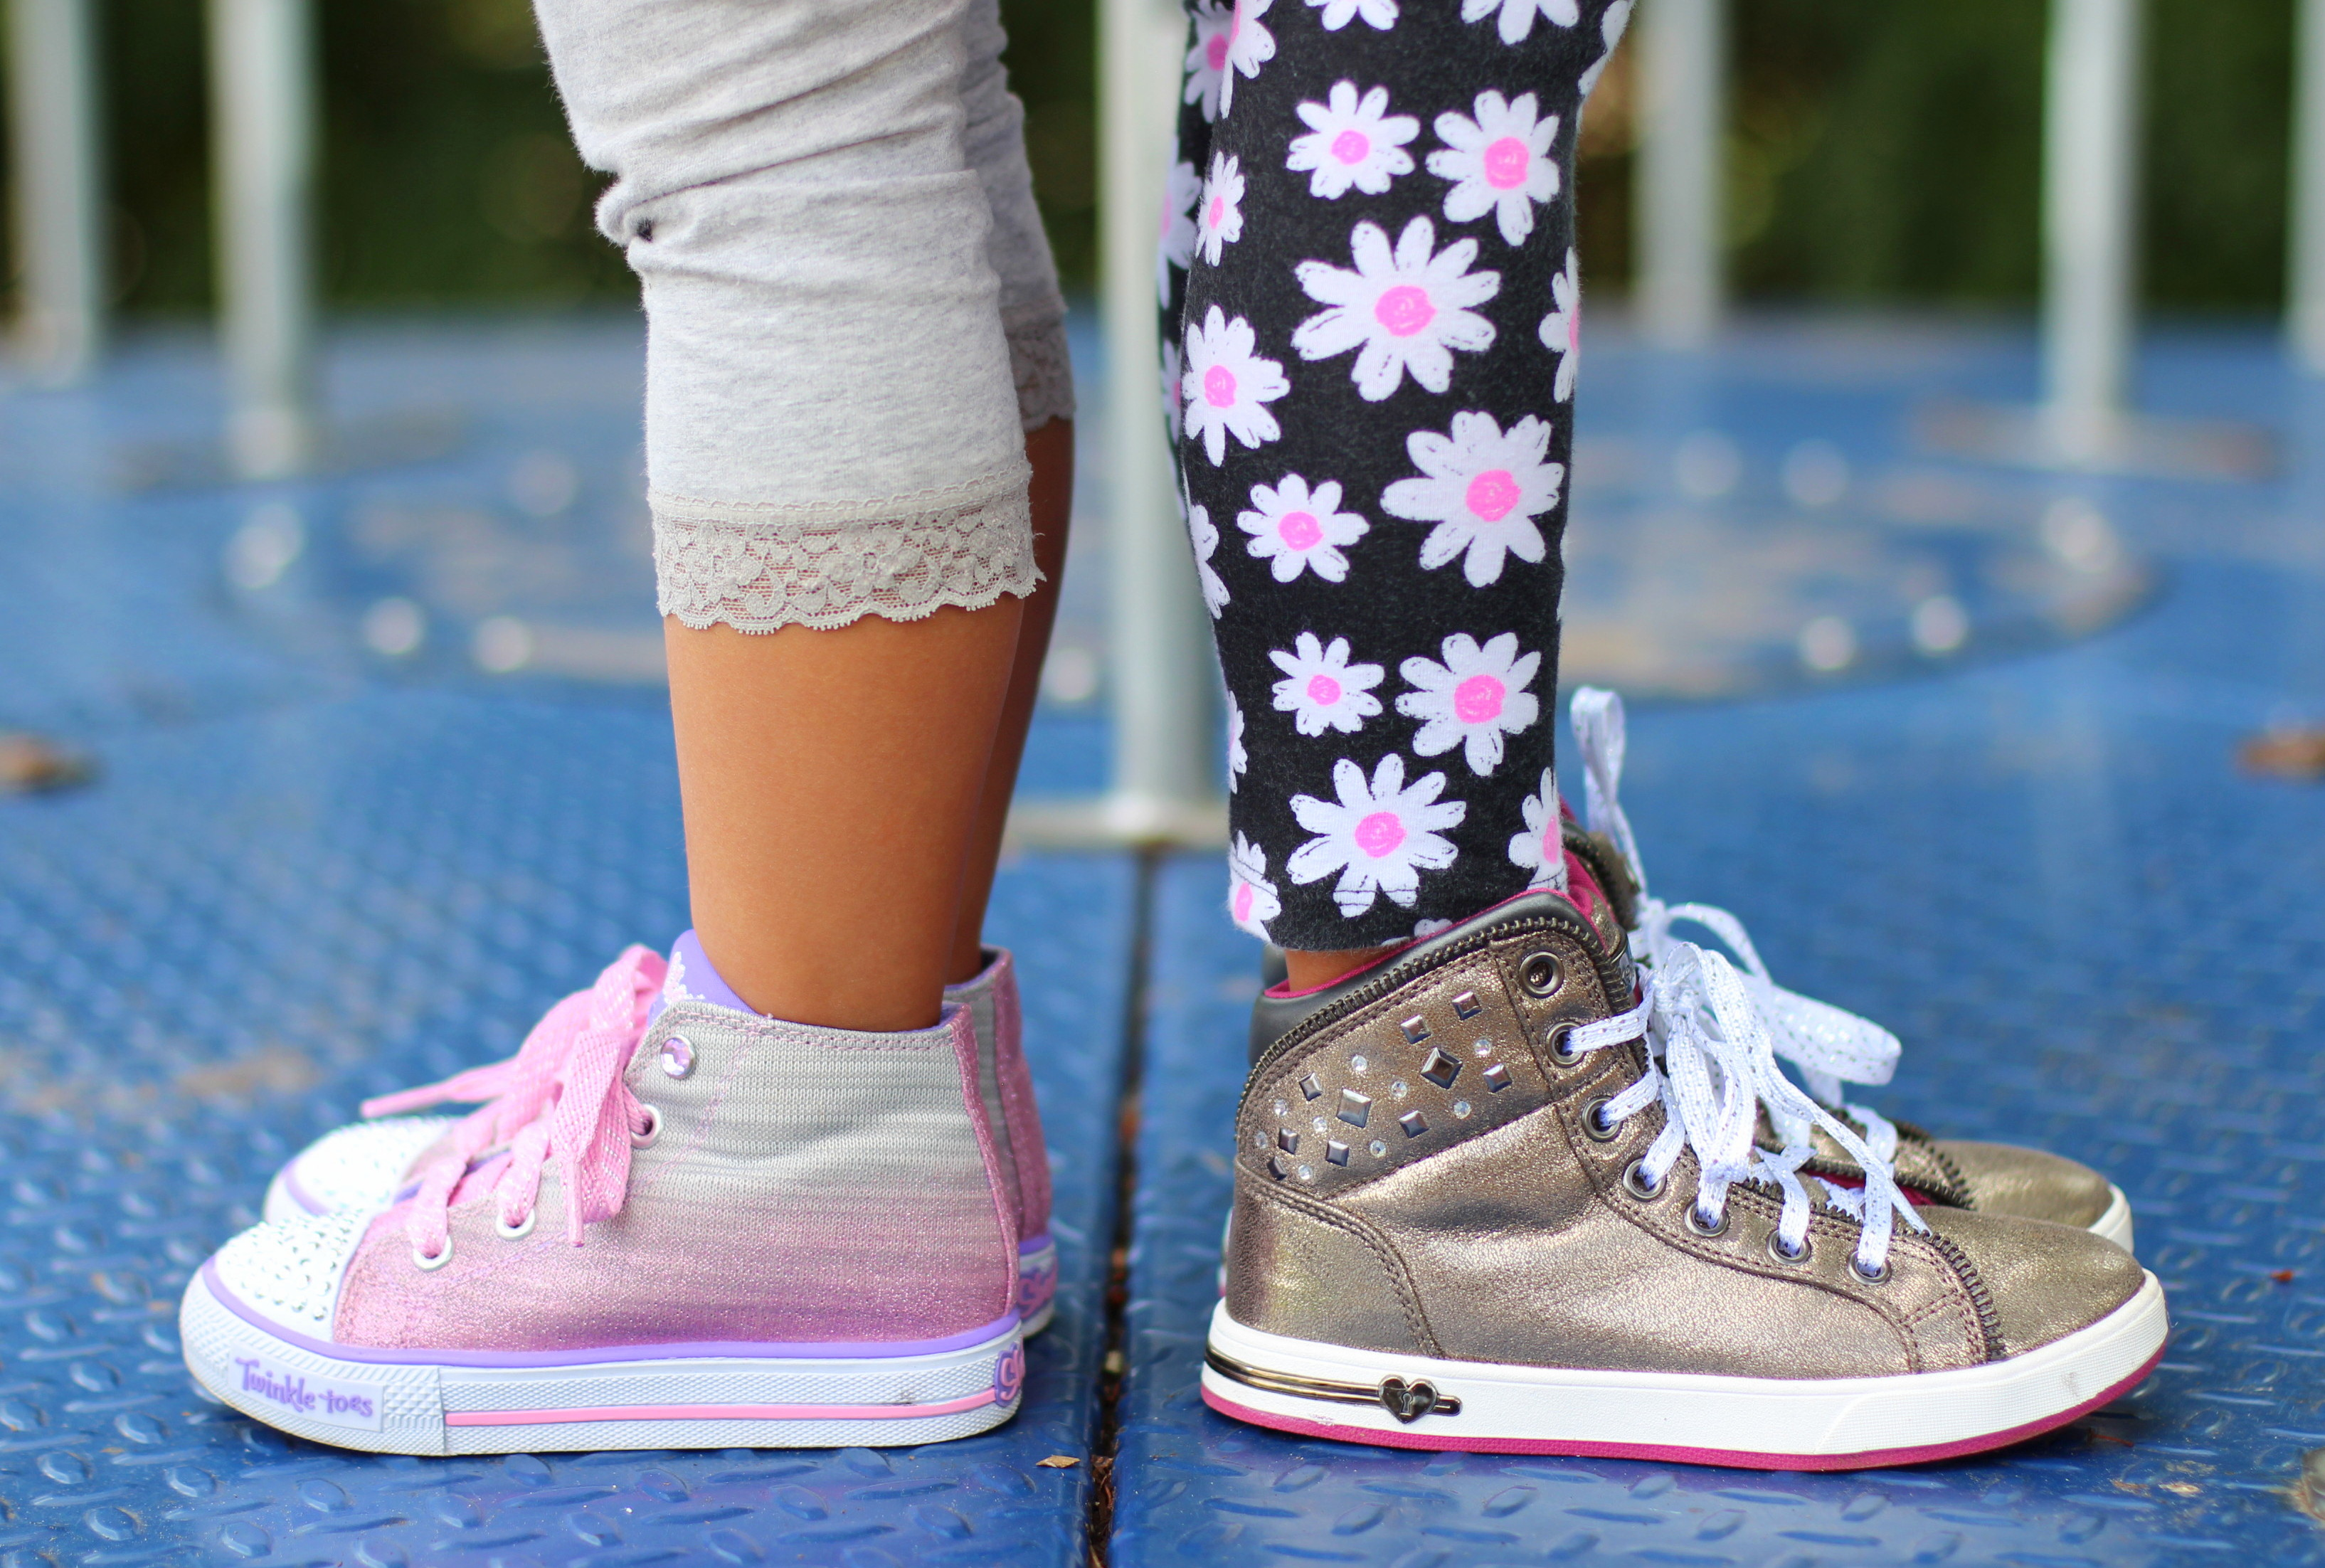 Gearing Up for School with #SKECHERS